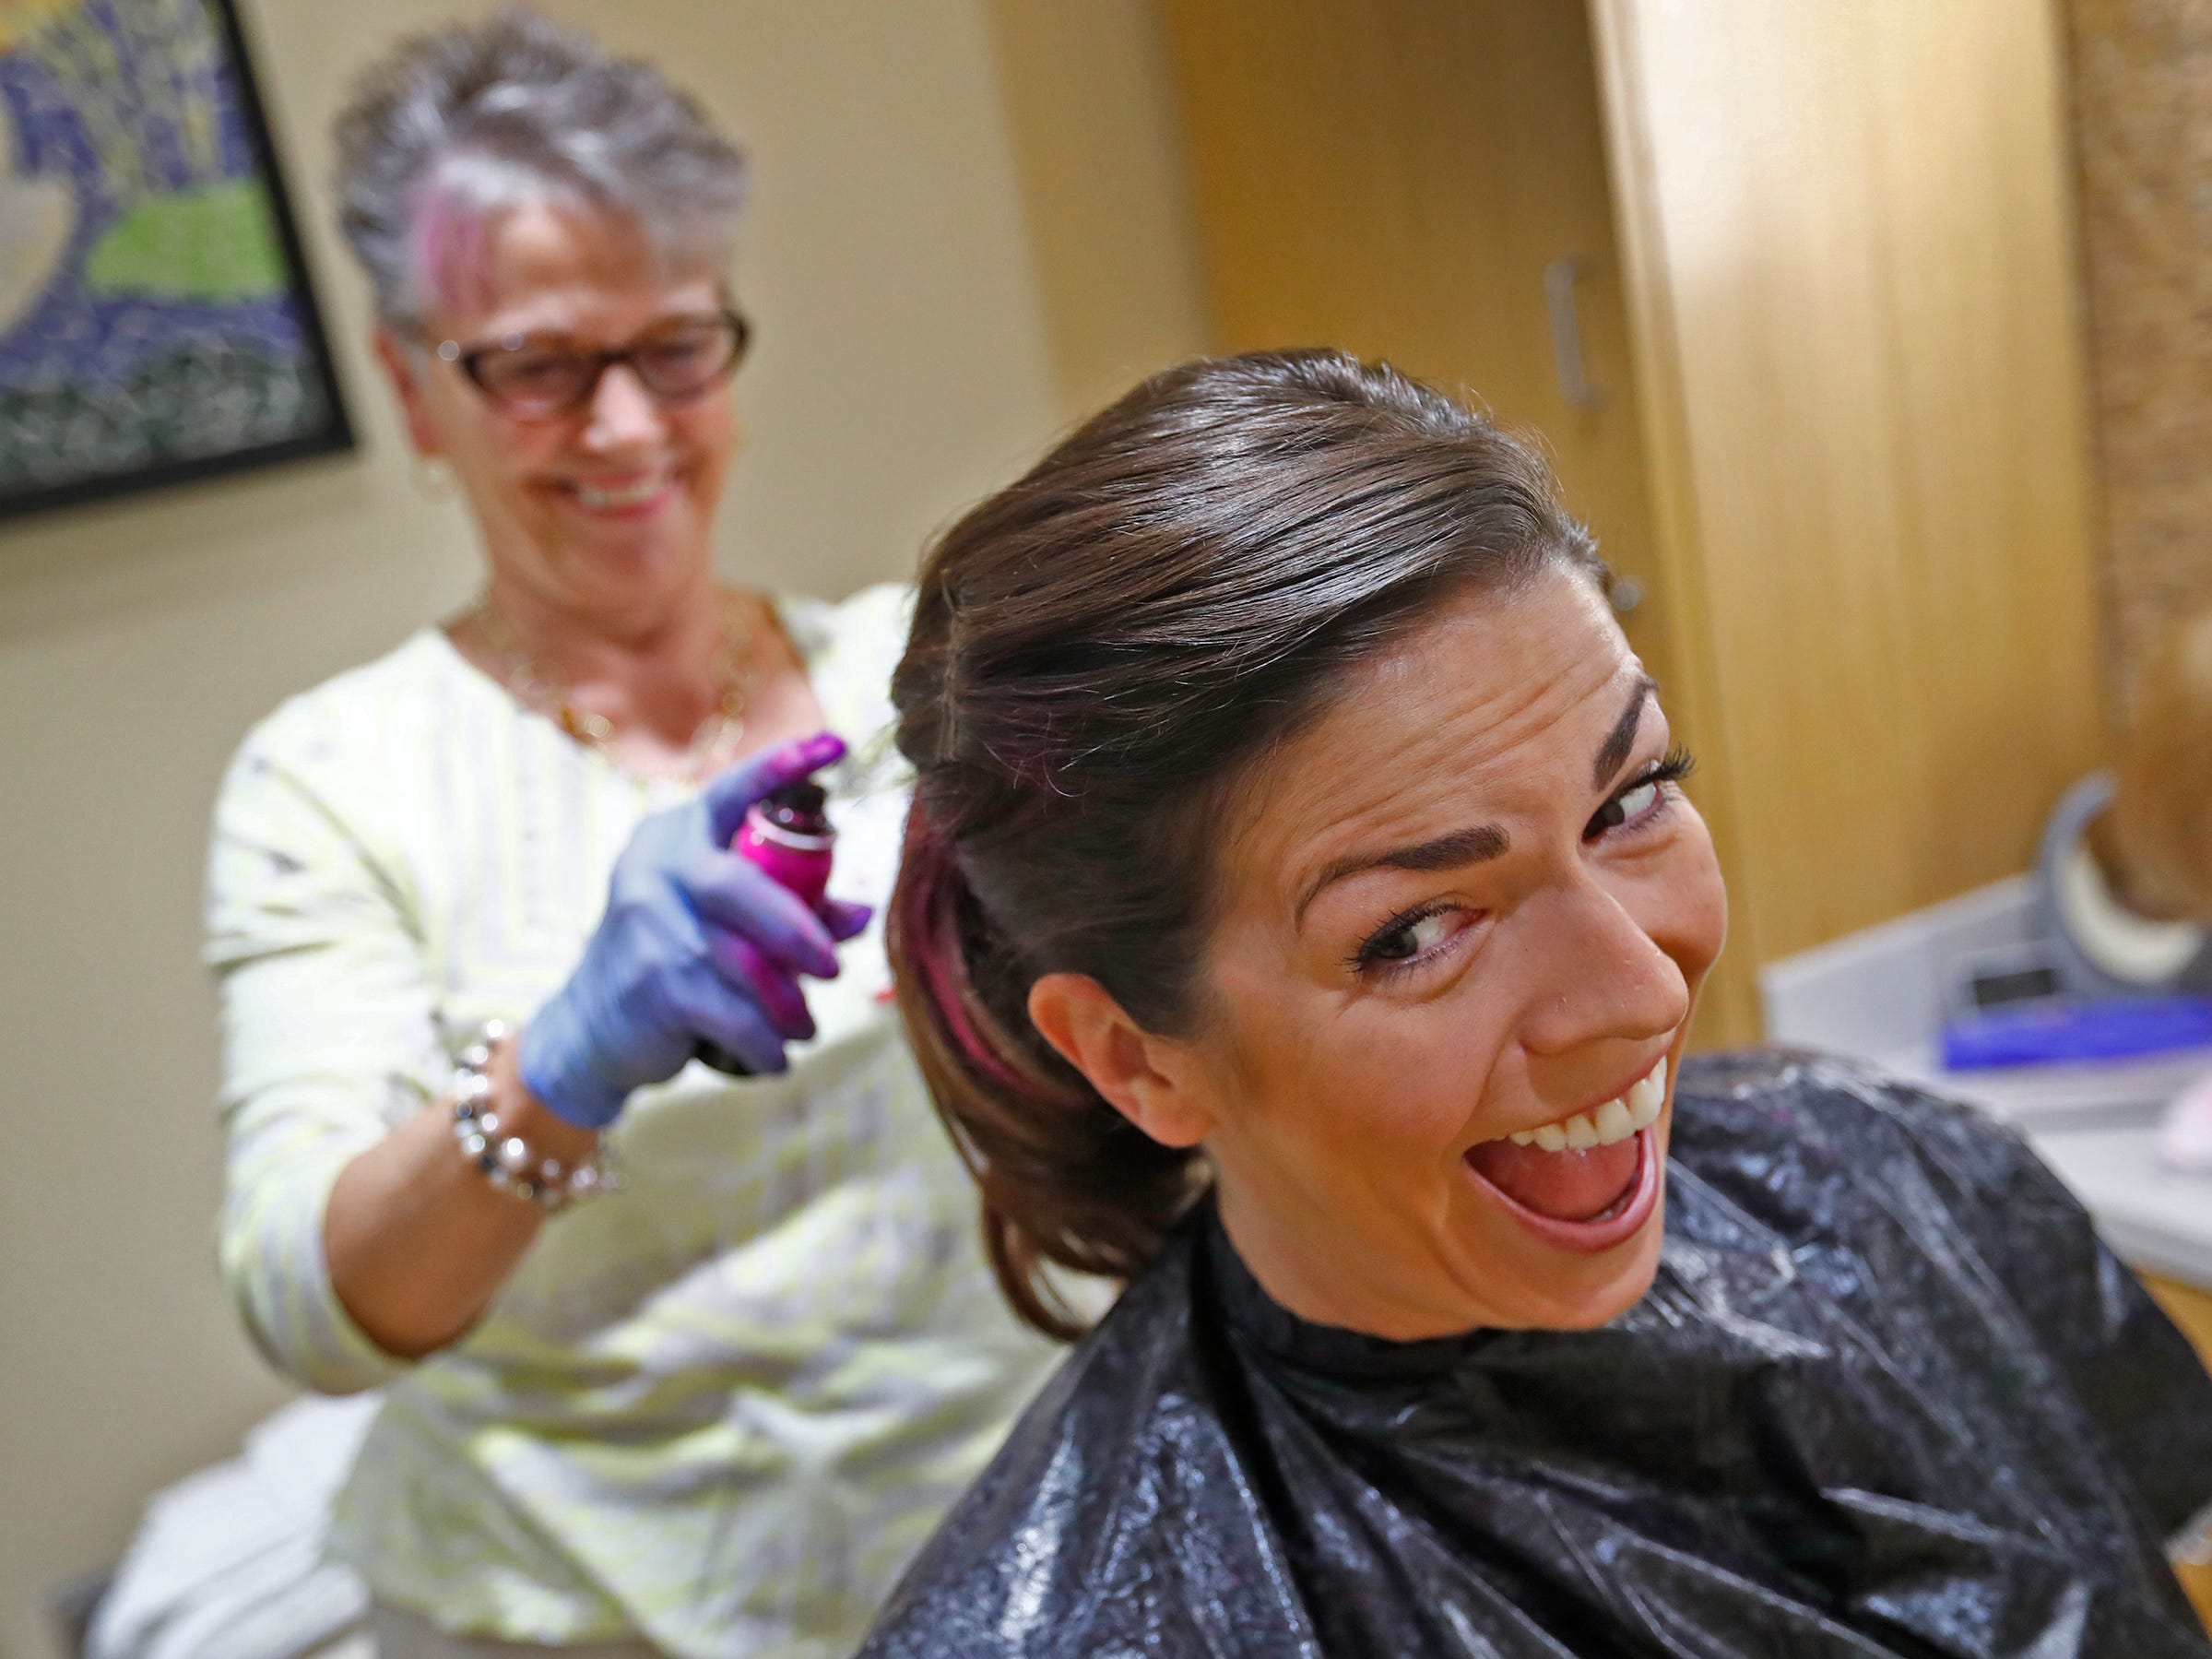 "Wilma Cross, left, sprays pink into an exhilarated Beth Resner's hair at the Wig Bank in the Indiana University Melvin and Bren Simon Cancer Center, Wednesday, Oct. 3, 2018.  IU Health staff members are given the opportunity to ""go pink"" to show support for their patients as part of Breast Cancer Awareness month."